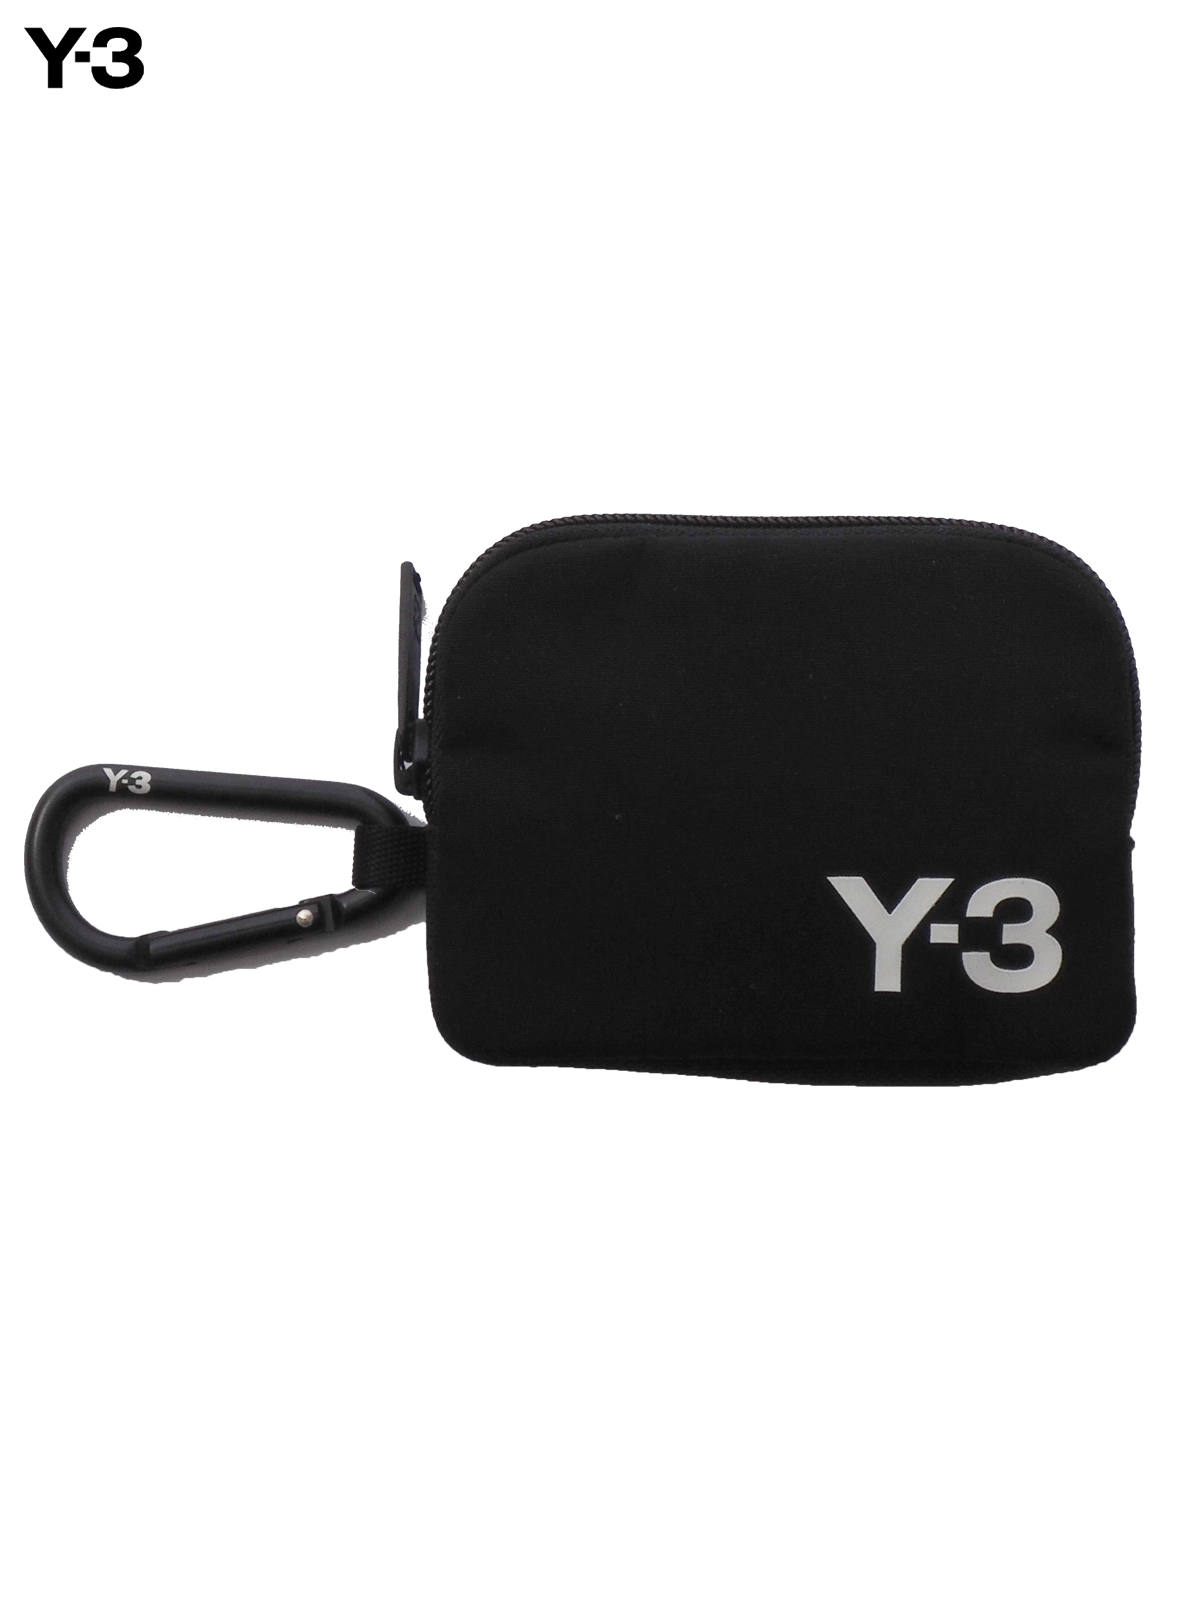 Y-3 CARABINER POUCH / ワイスリー カラビナ ポーチ(ブラック)